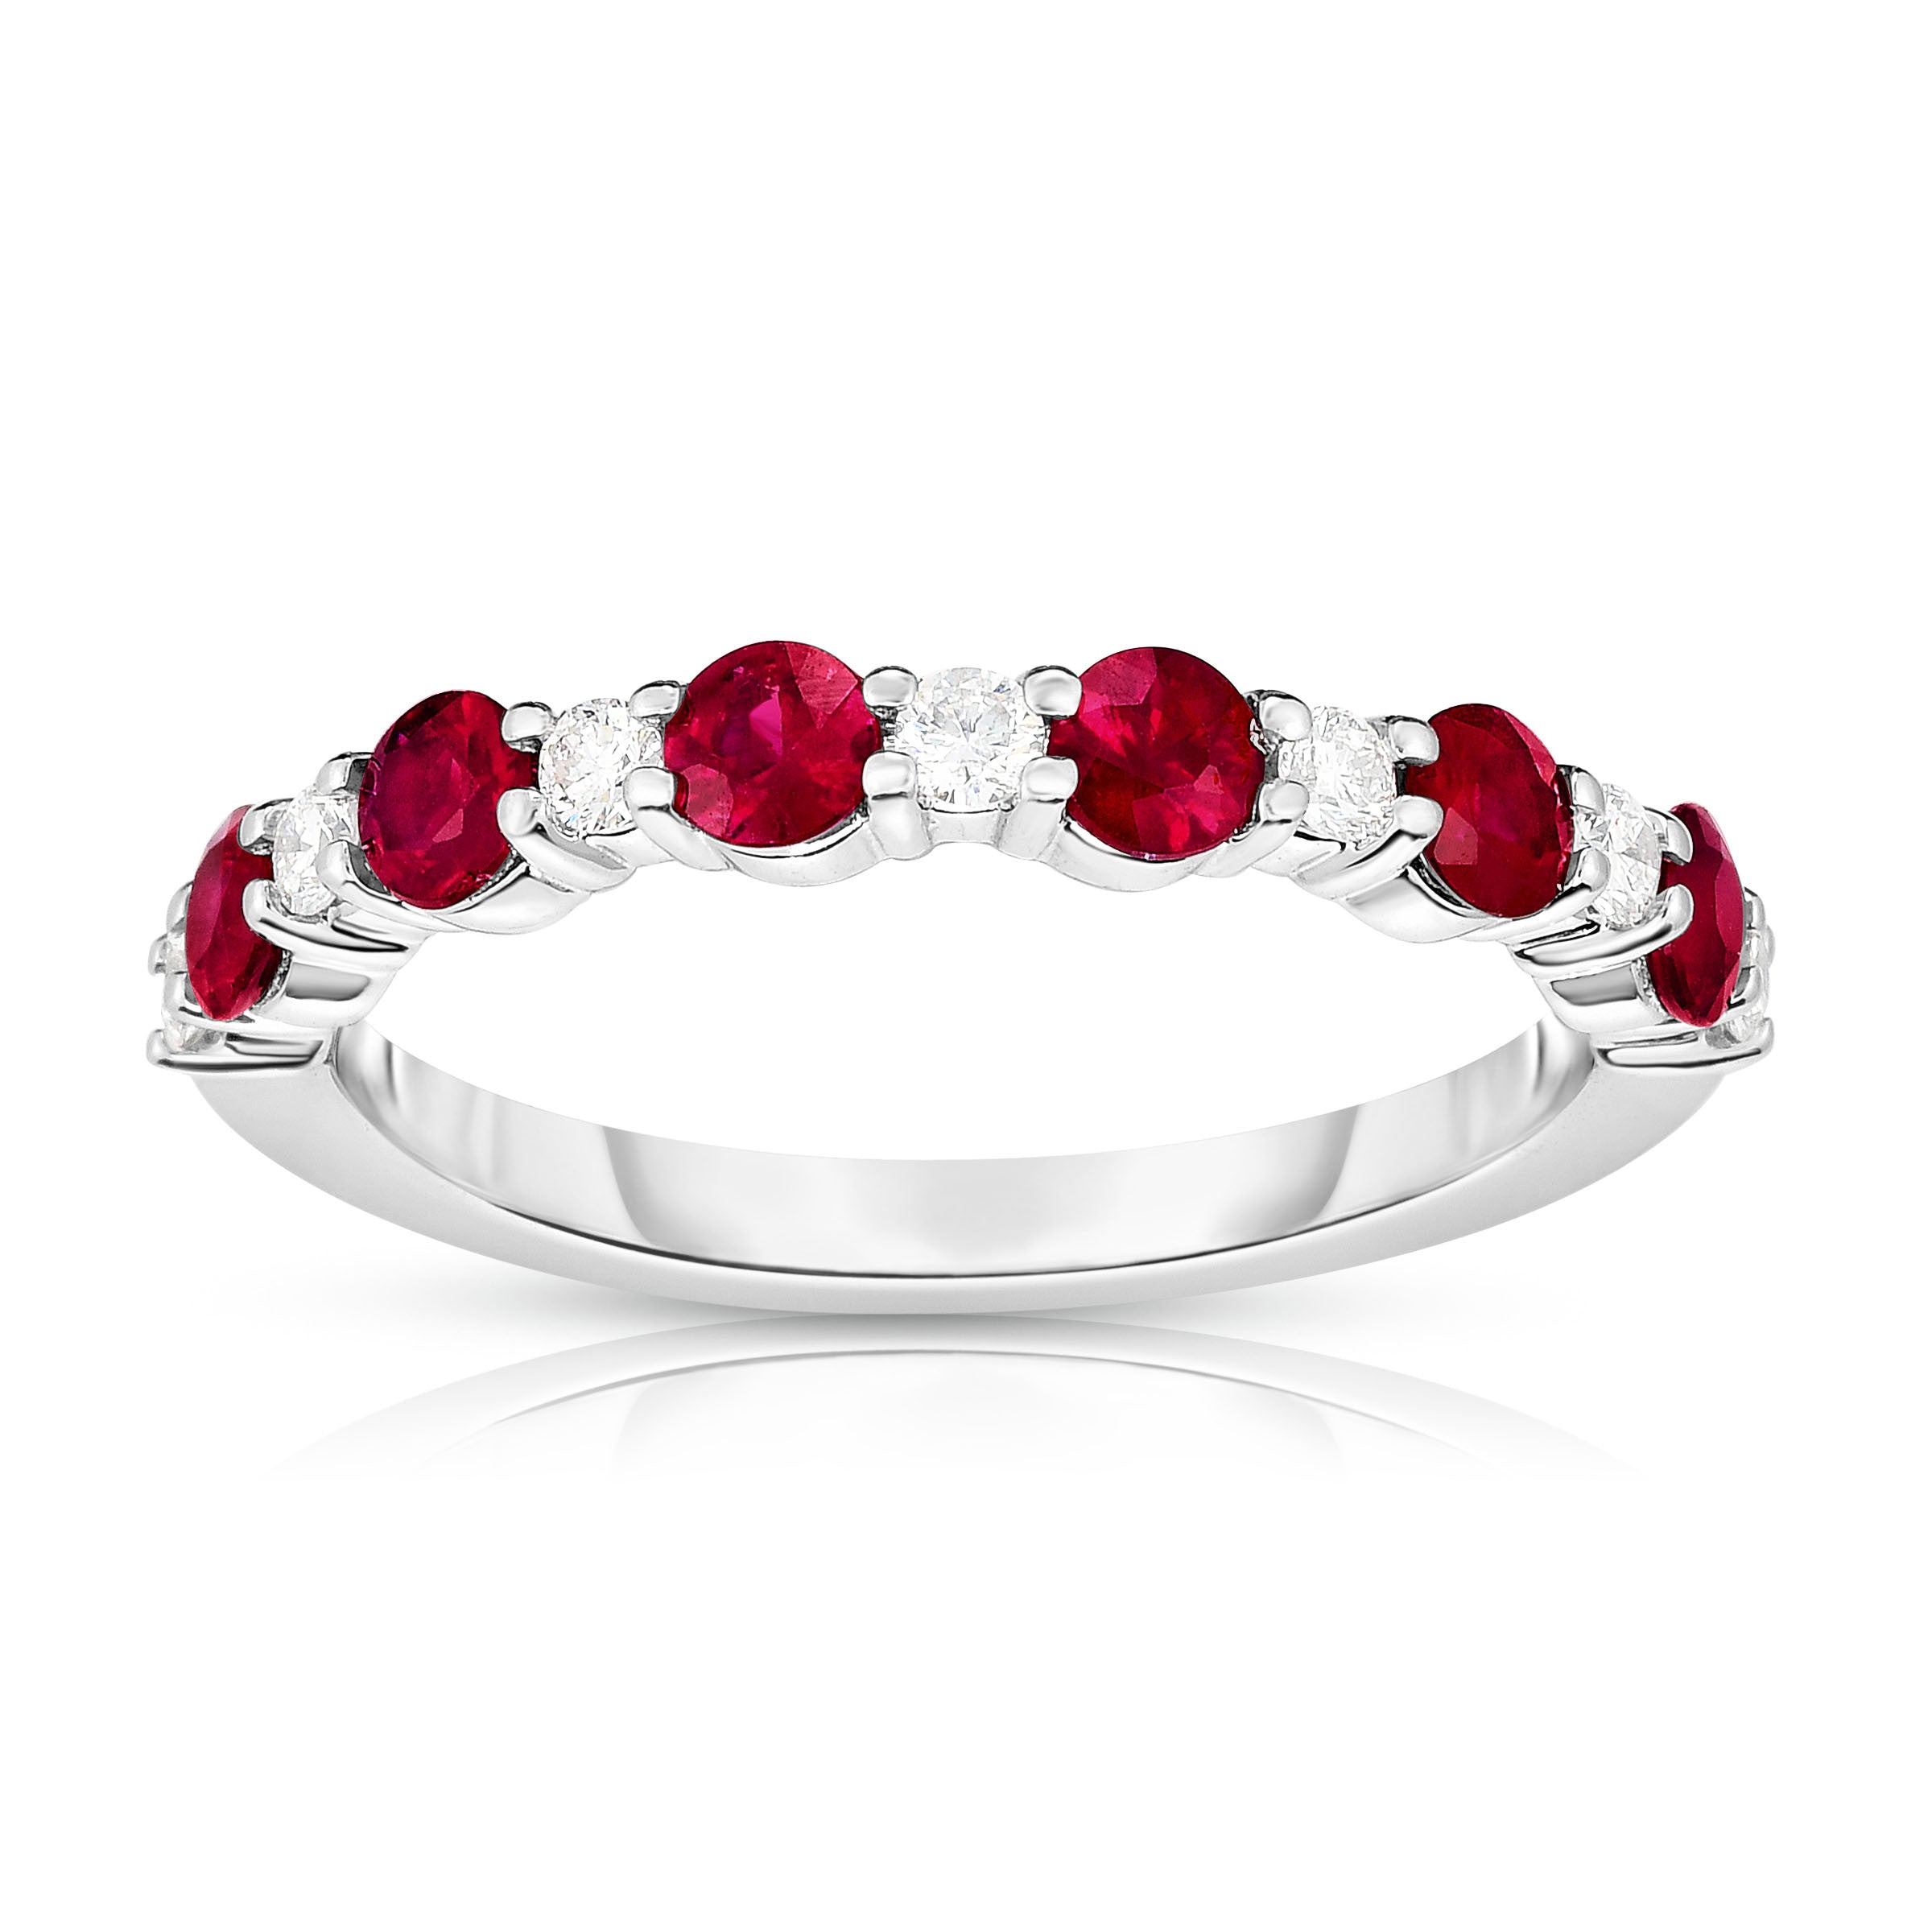 red nyc in diamond wedding engagement made york rings new weiner jewelry erica